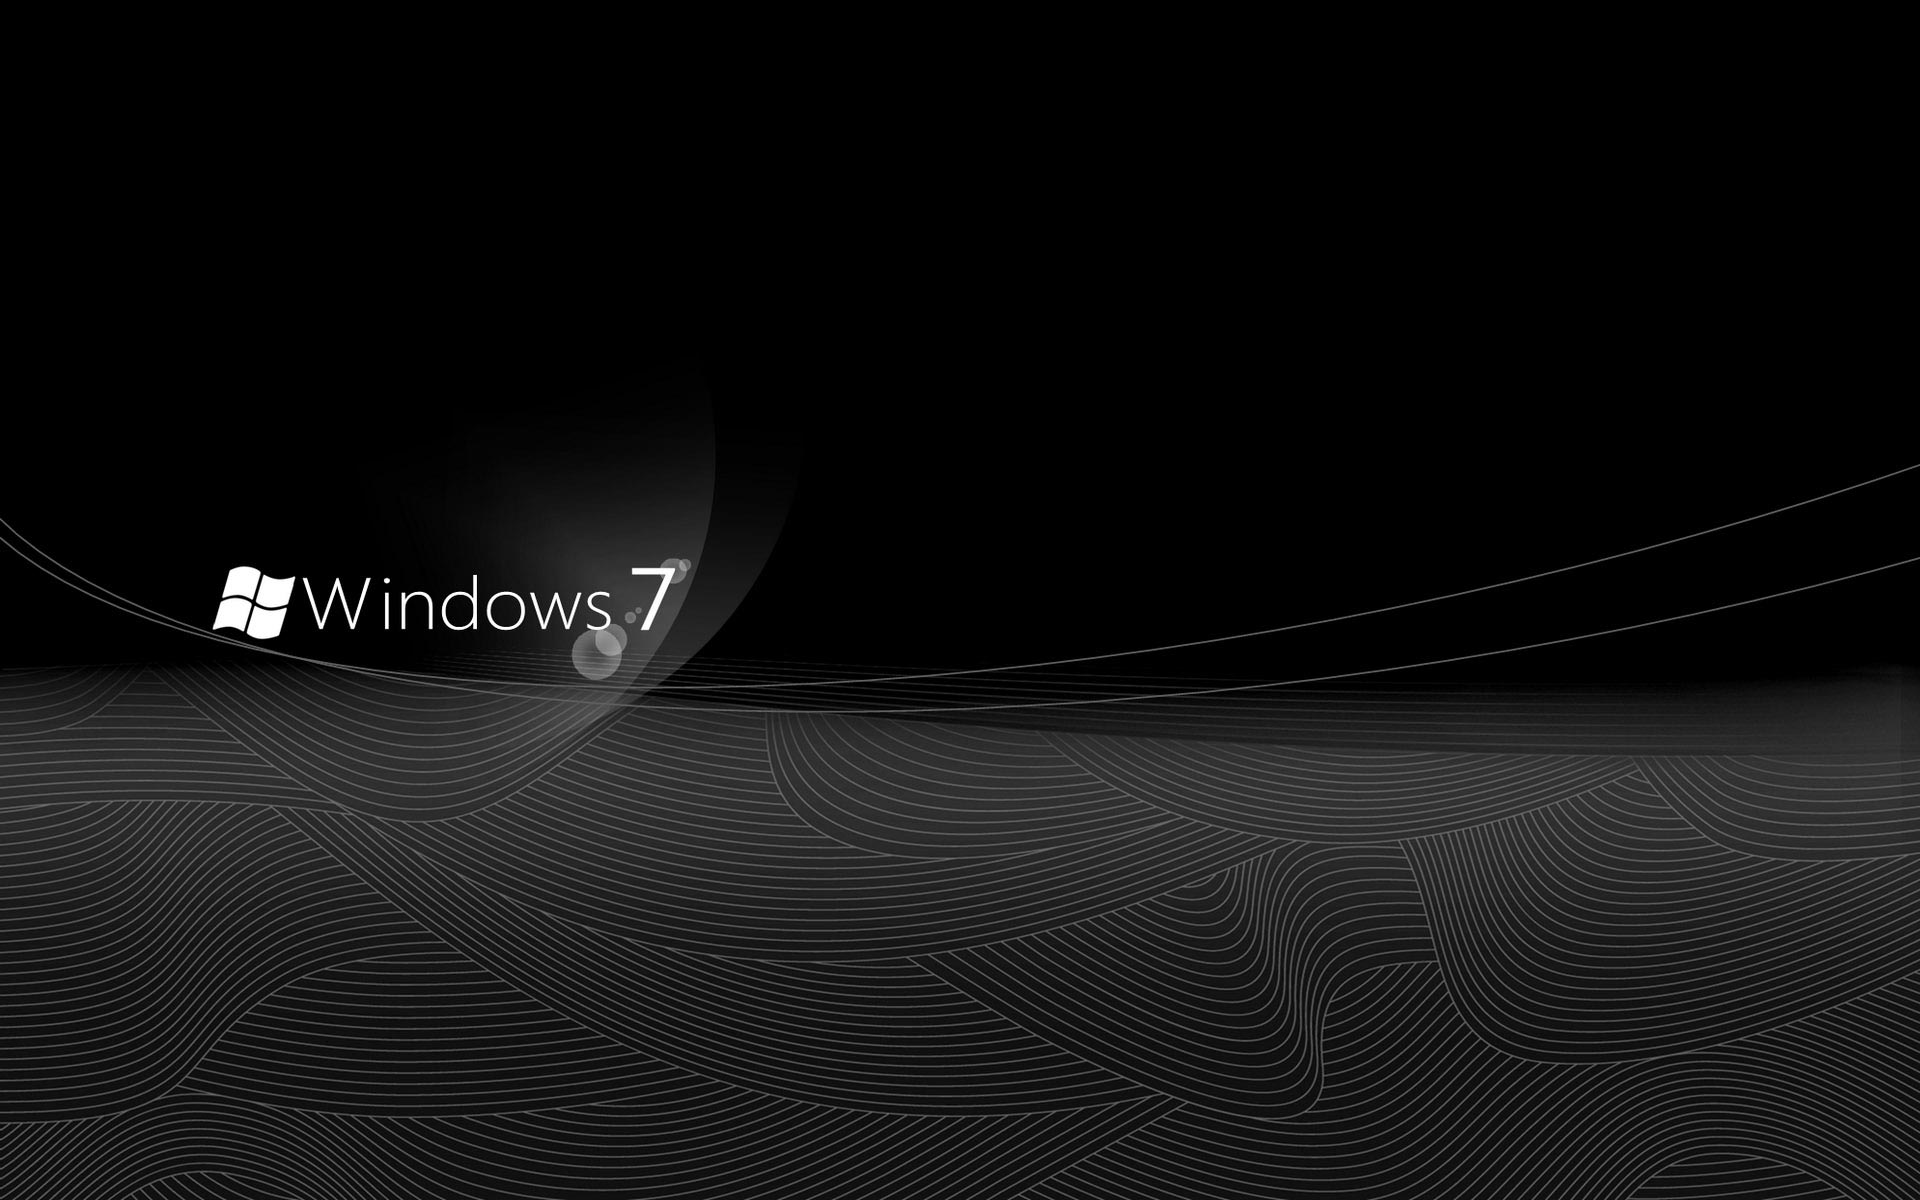 Windows 7 Elegant black Desktop Wallpaper and make this wallpaper for 1920x1200